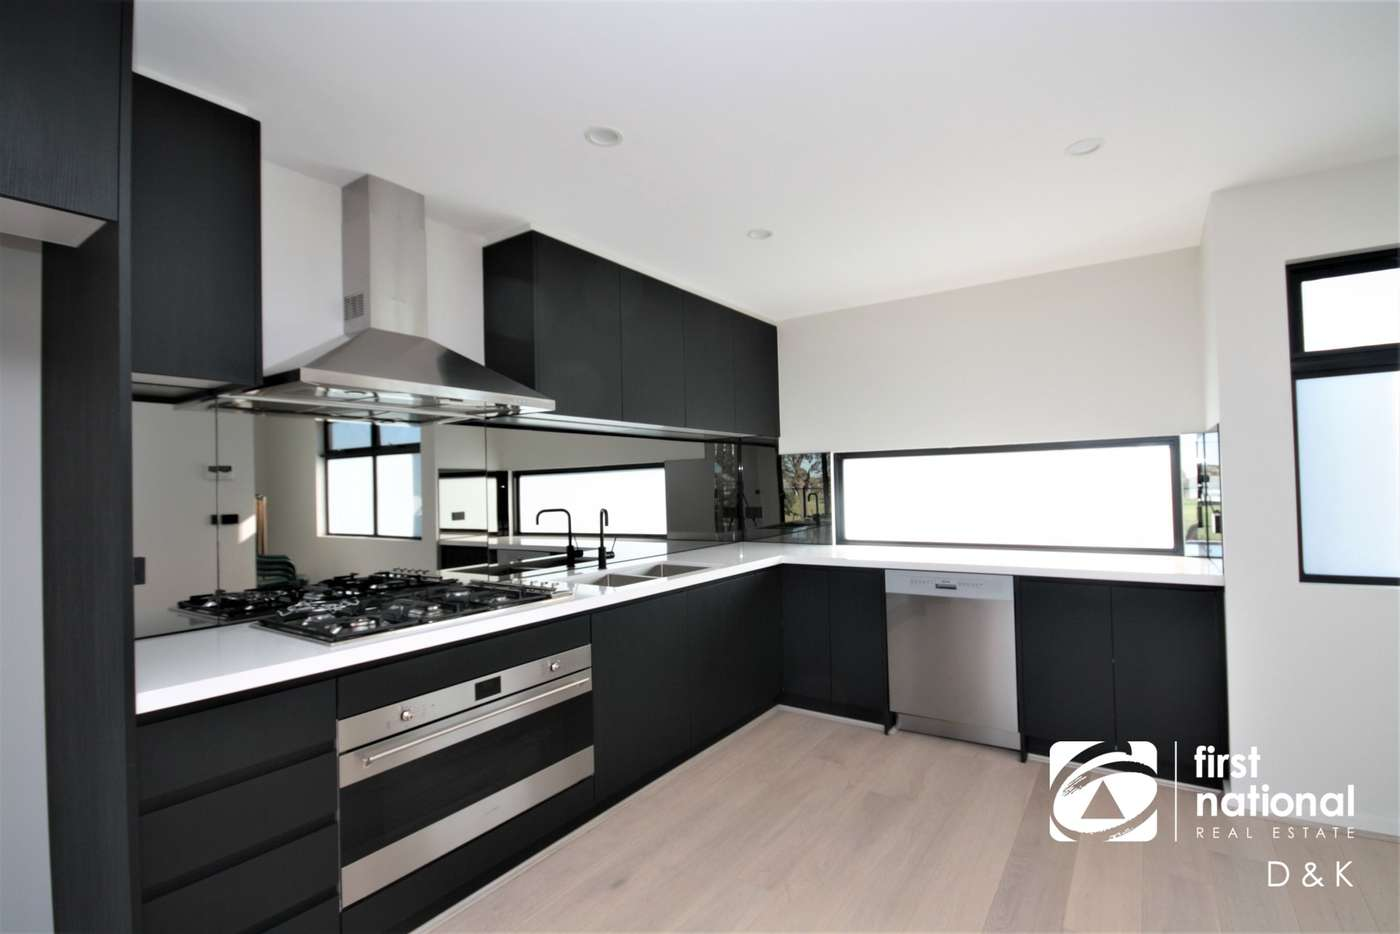 Sixth view of Homely townhouse listing, 86 Drew Street, Yarraville VIC 3013